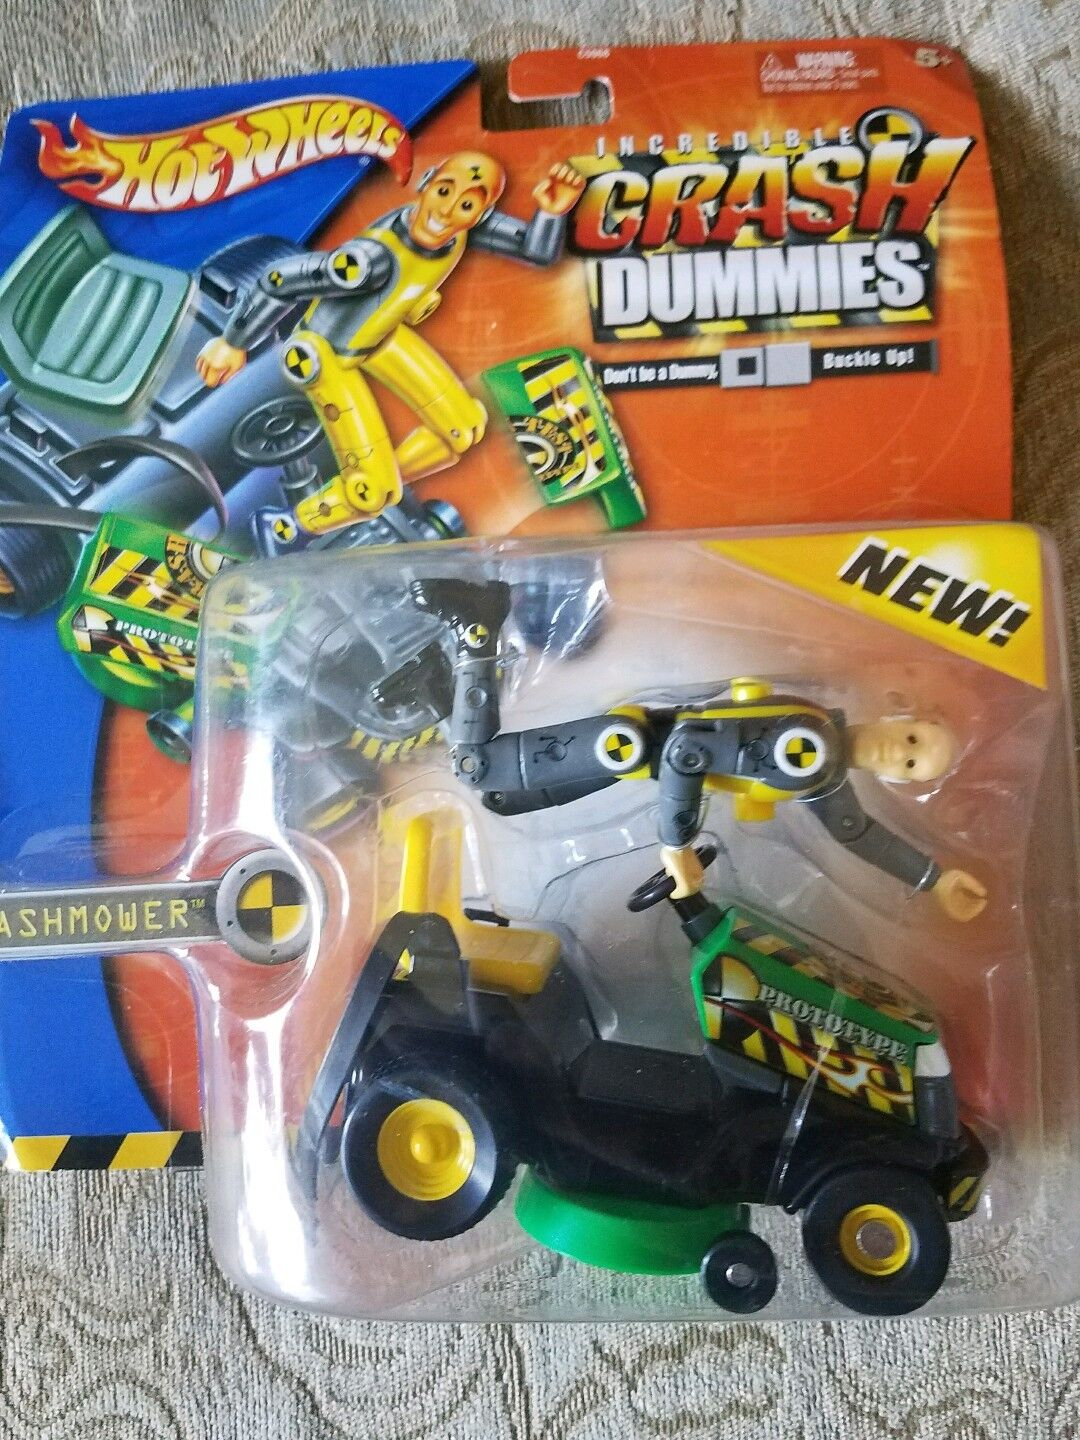 RARE HOT WHEELS CRASH DUMMIES DUMMIES DUMMIES CRASH MOWER, NIB 6c569e